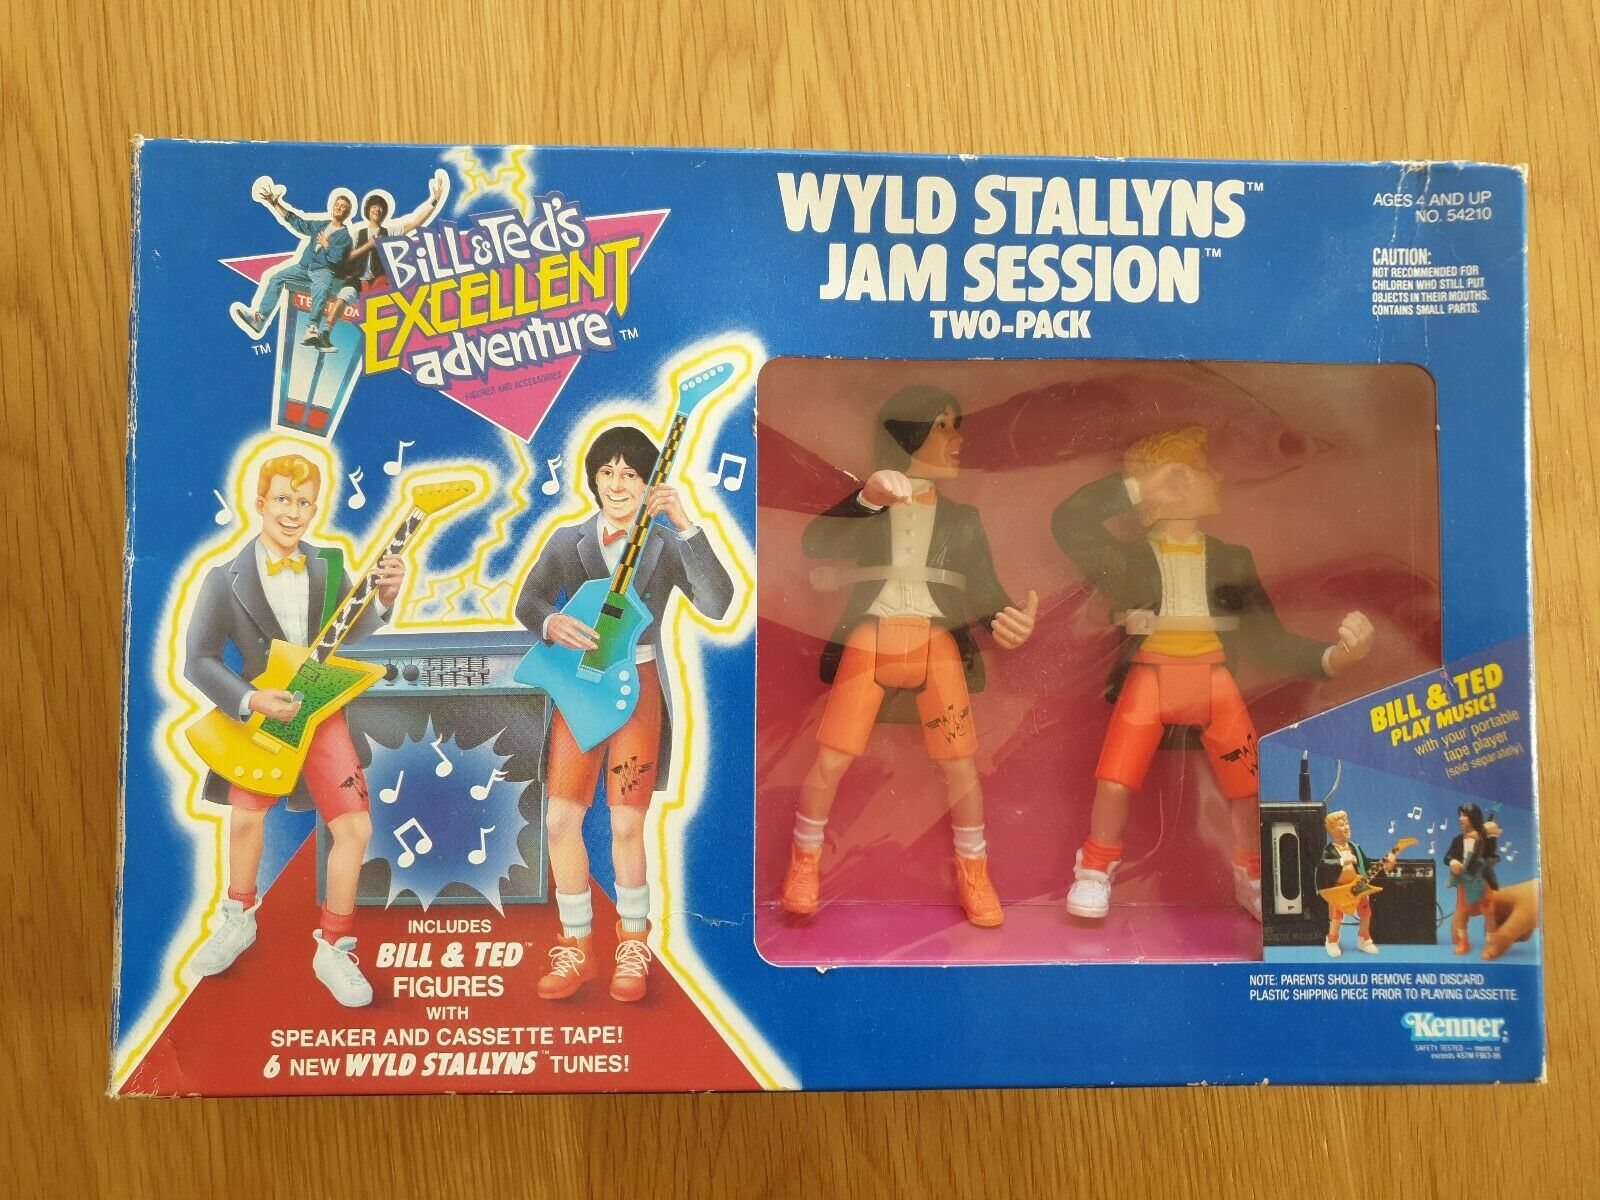 BILL & TED'S EXCELLENT ADVENTURE WYLD STALLYNS JAM SESSION Brand New C.I.B